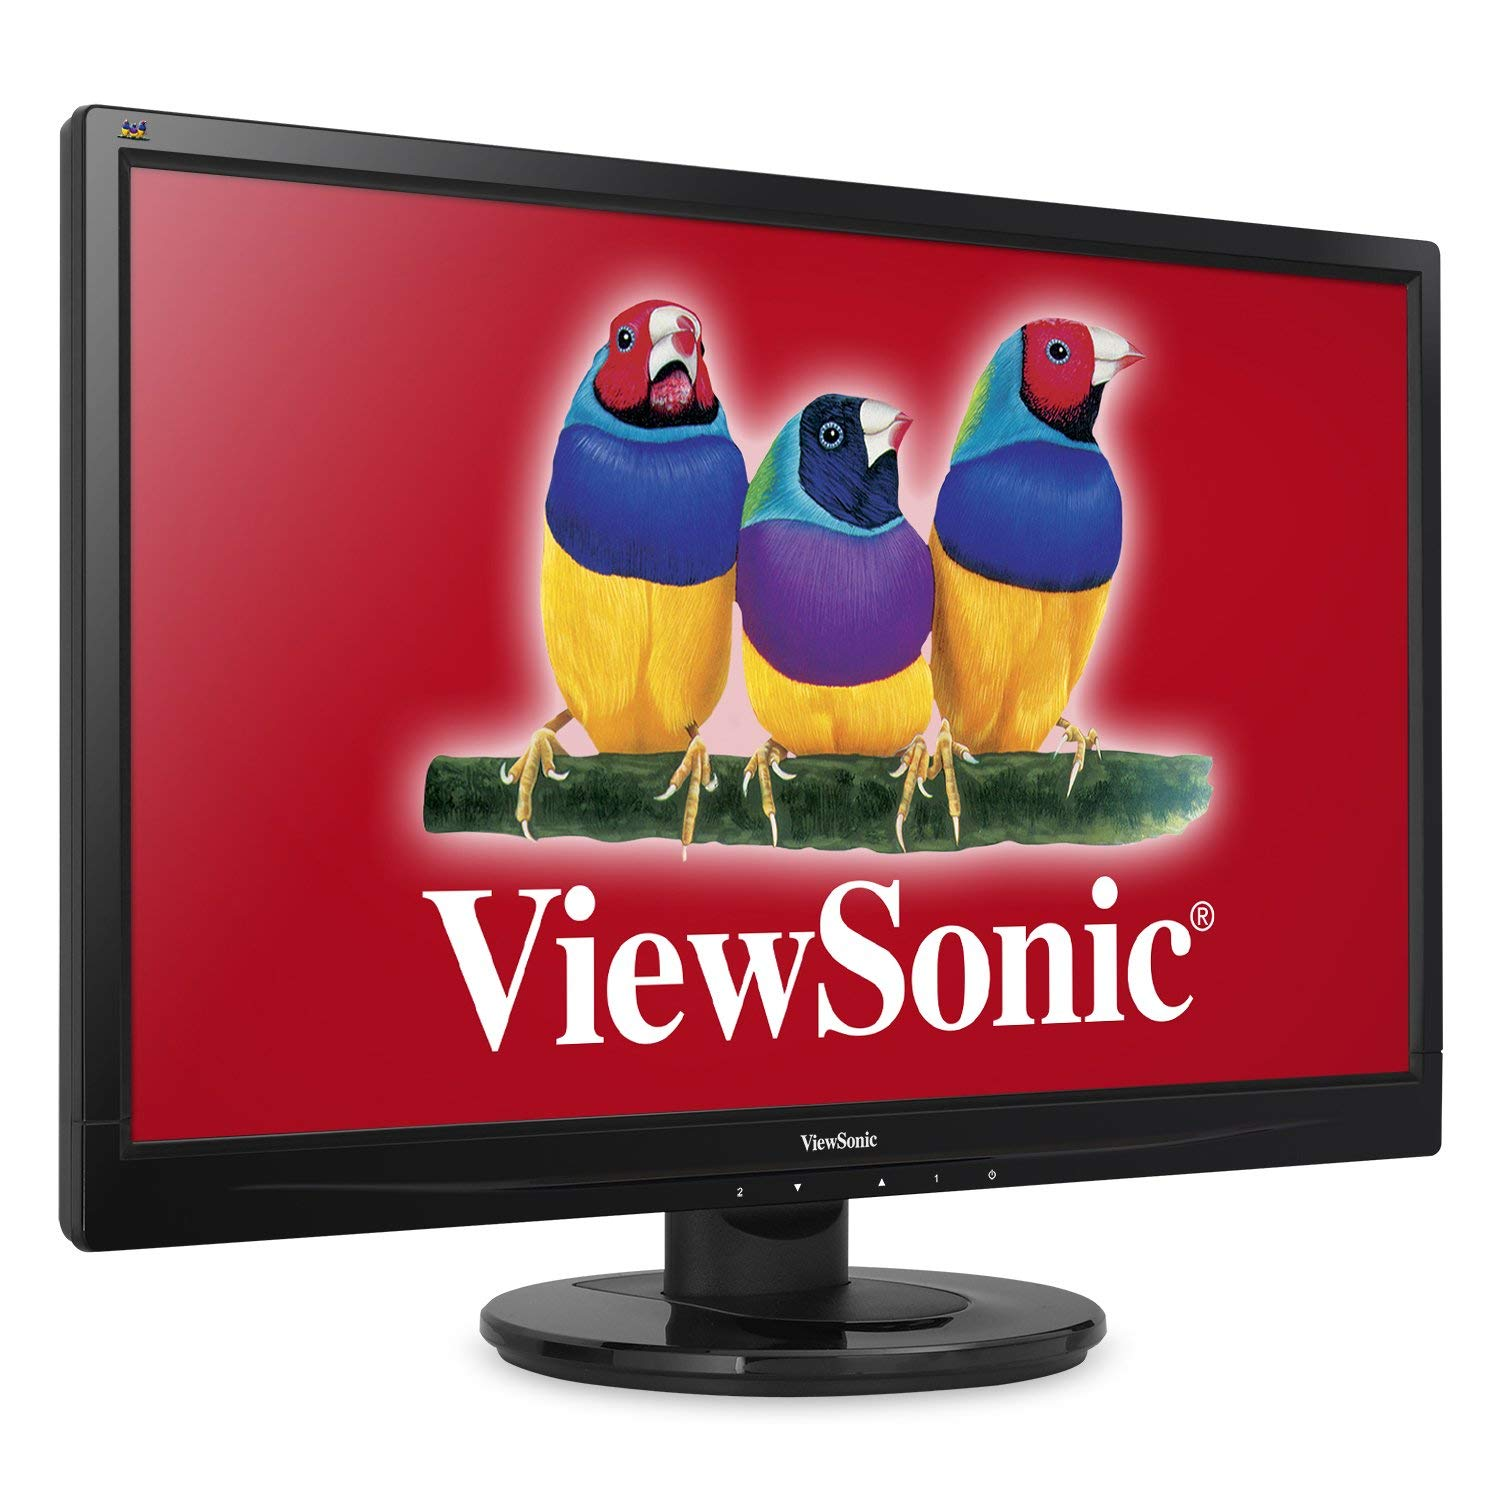 "ViewSonic 27"" VA15457 DVI/VGA 1080p Widescreen LED LCD Monitor w/HDCP Support (Certified Refurbished)"